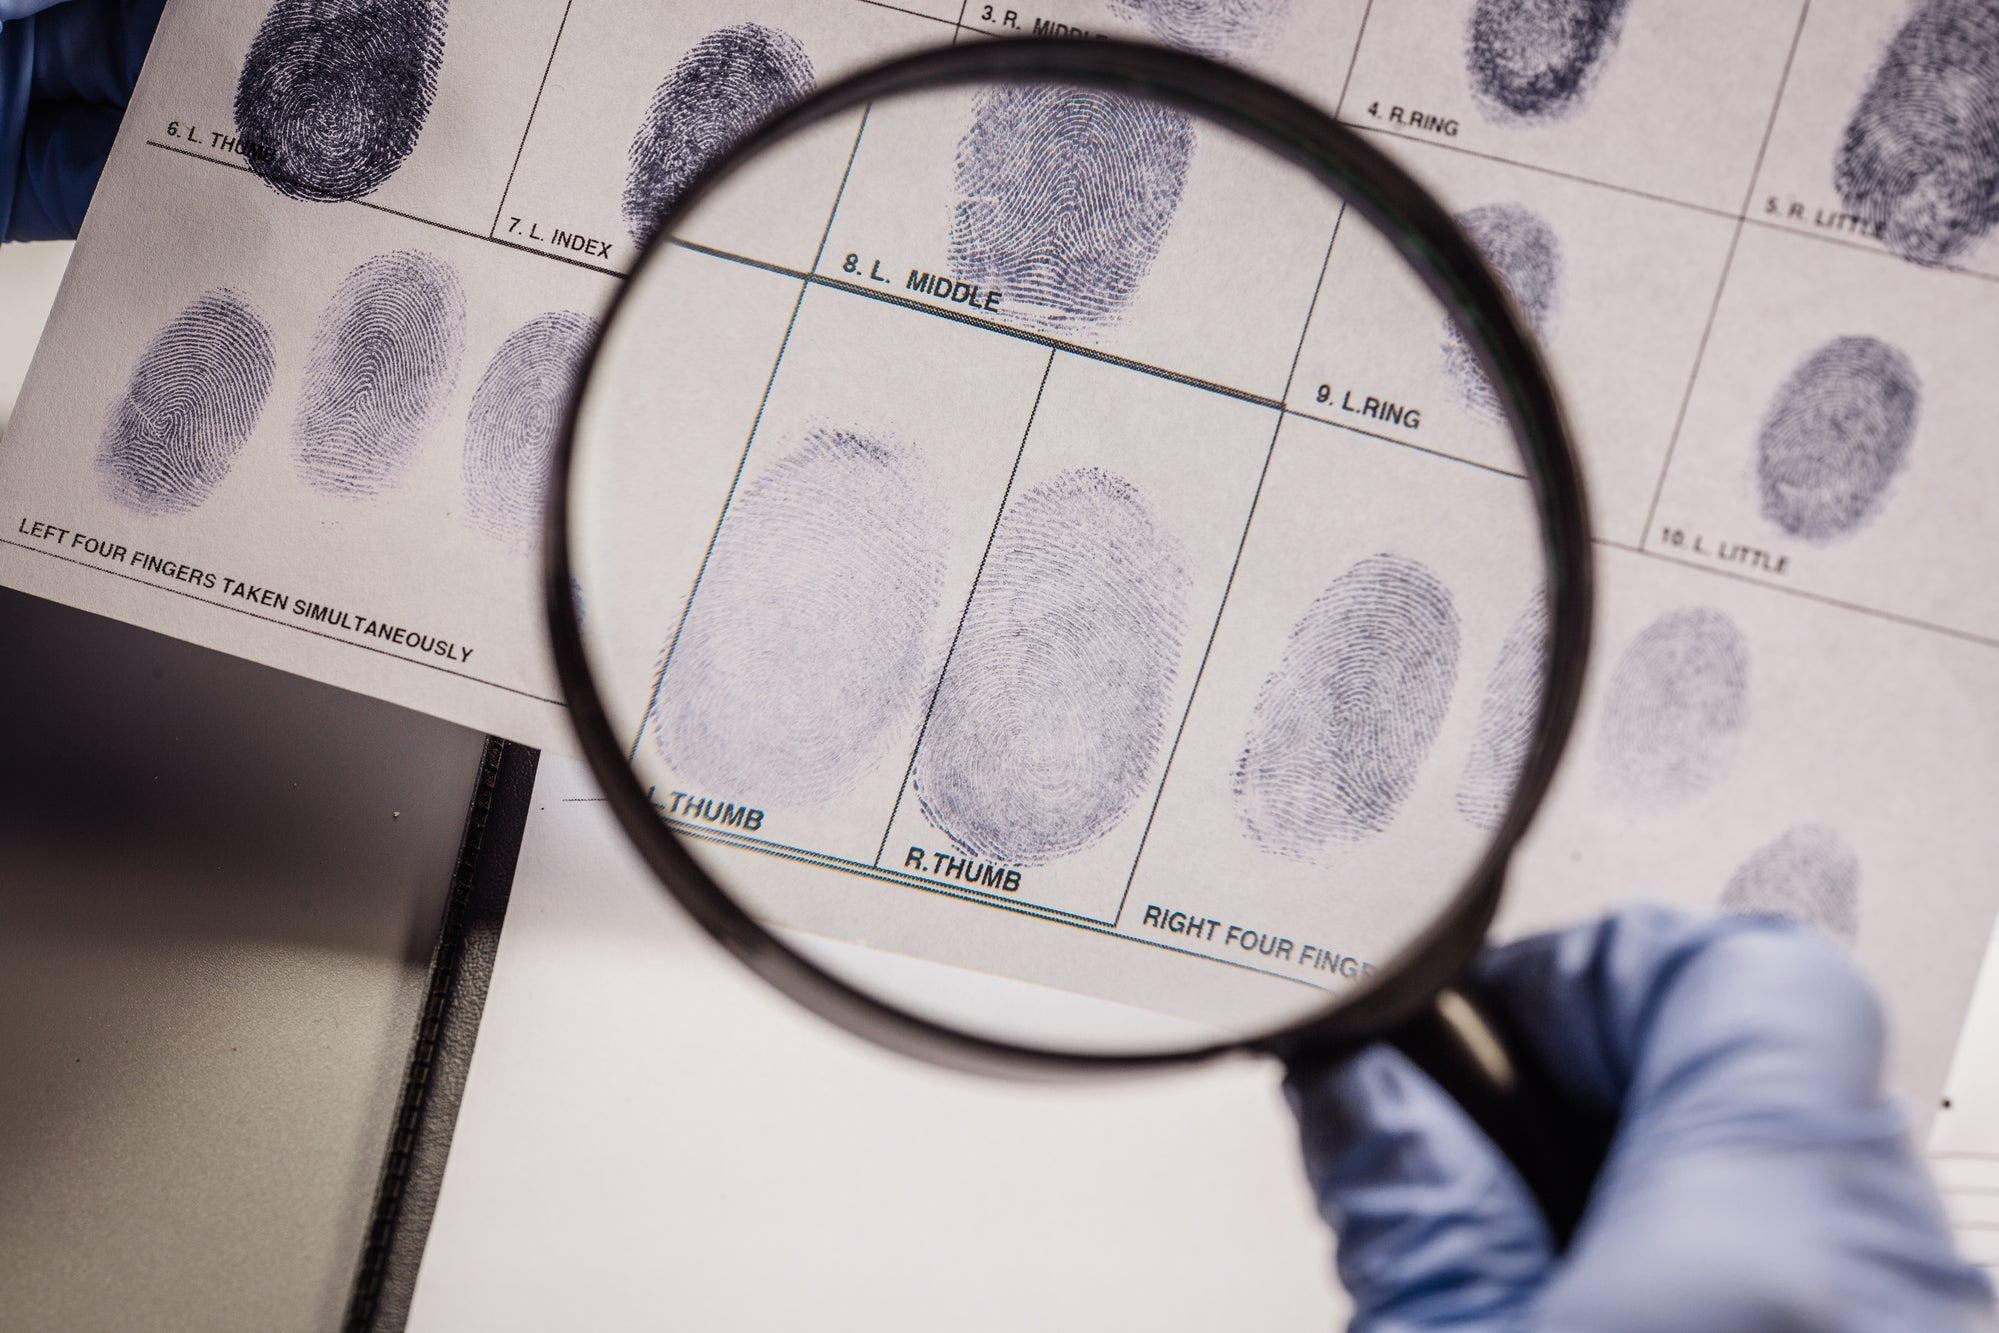 A gloved hand holding a magnifying glass and looking at fingerprints